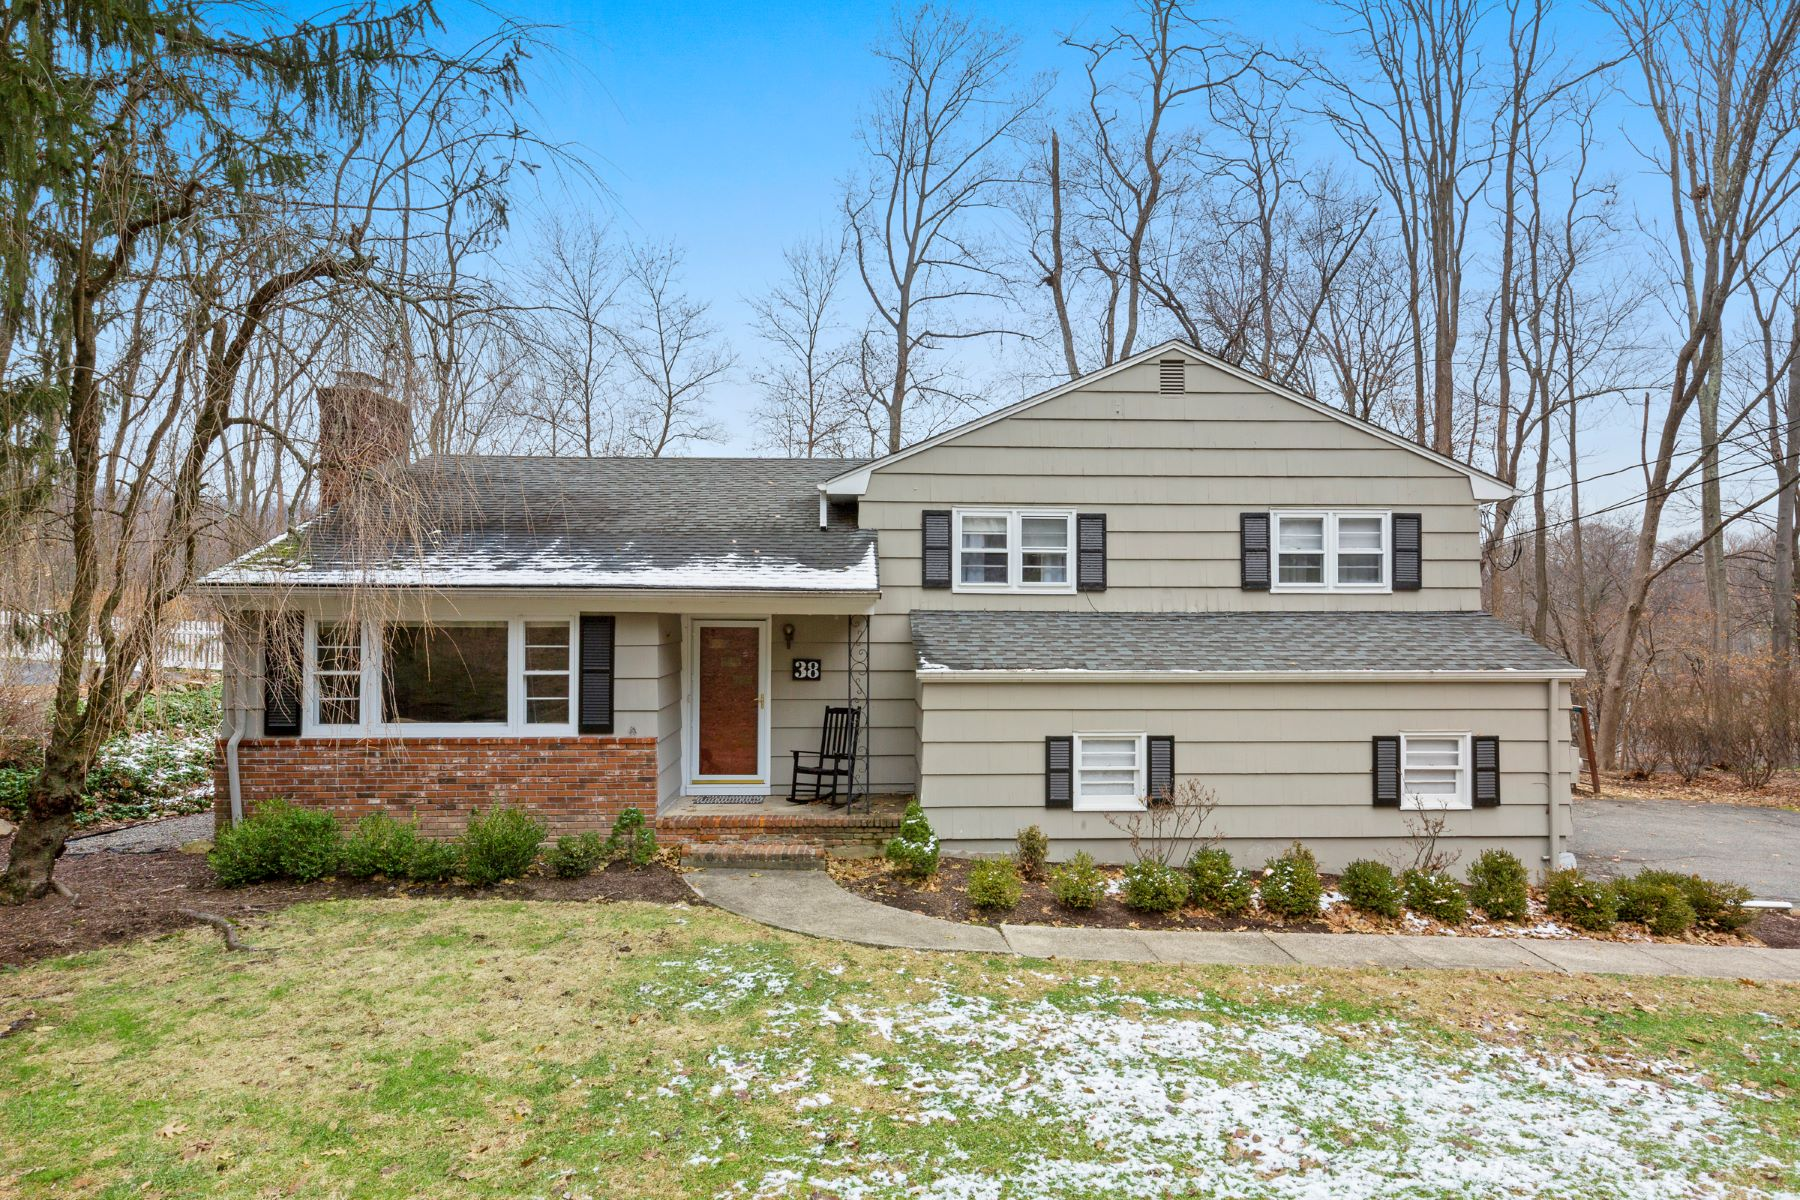 Single Family Homes for Sale at Great Location! 38 Molly Stark Drive Morris Township, New Jersey 07960 United States